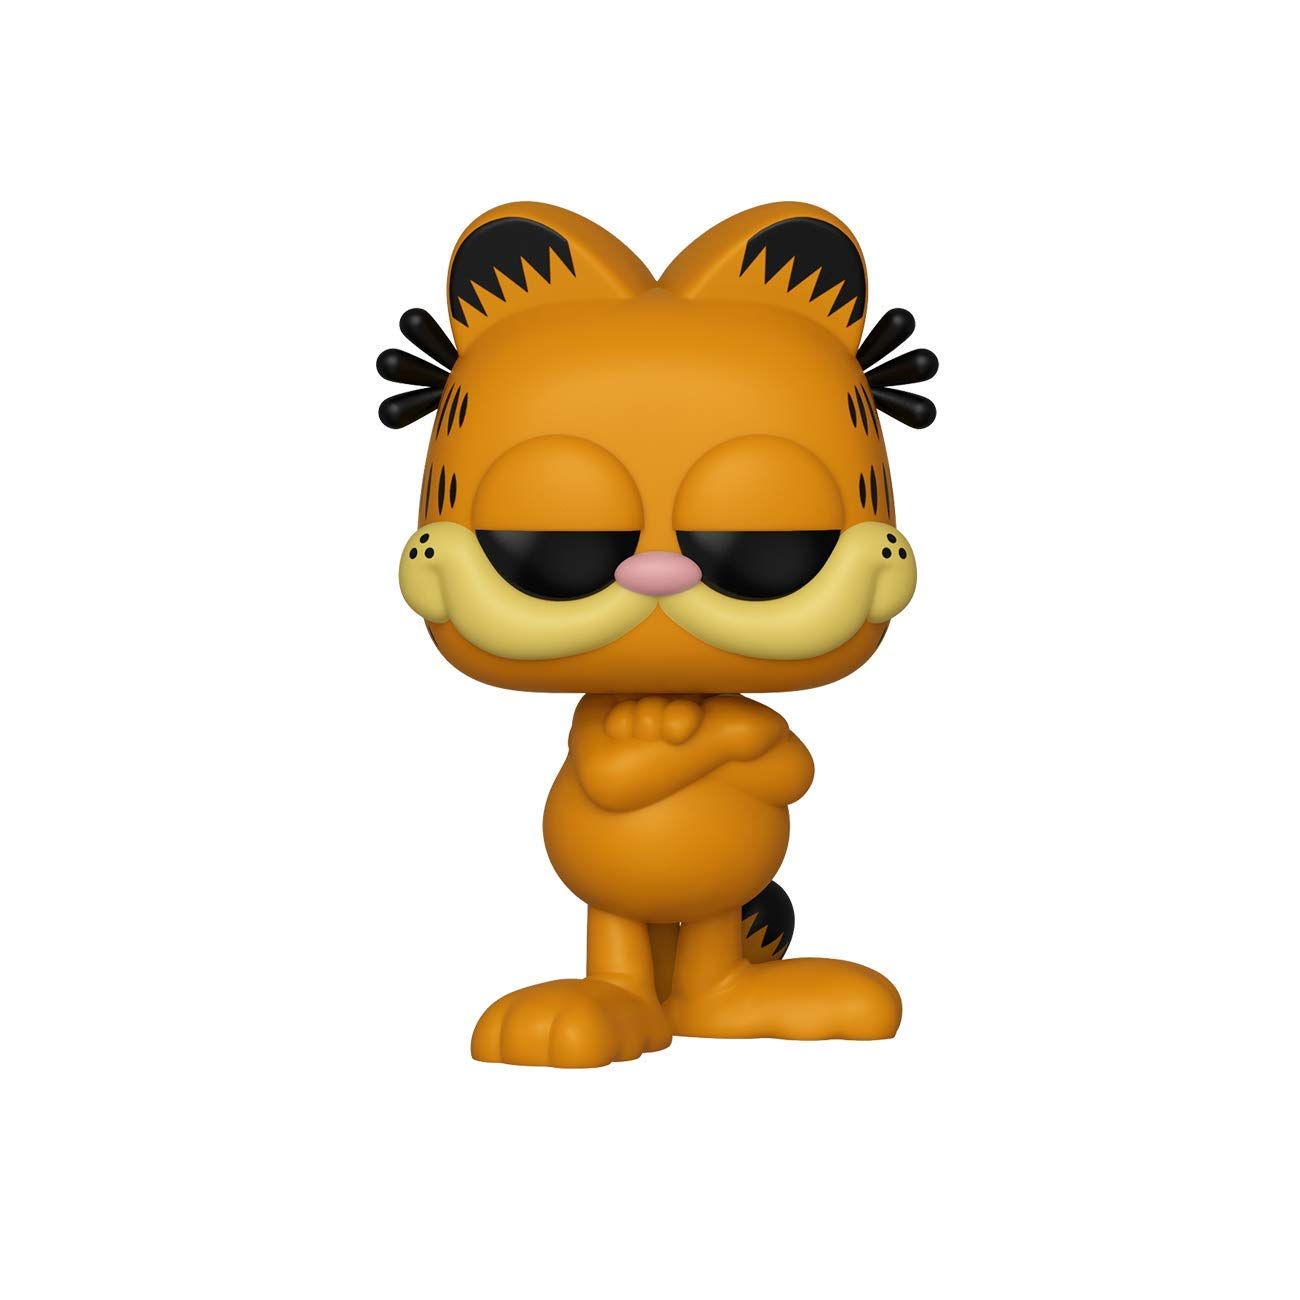 Buy Garfield Comics Garfield Pop Vinyl Figure 20 Online At Low Prices In India Amazon In